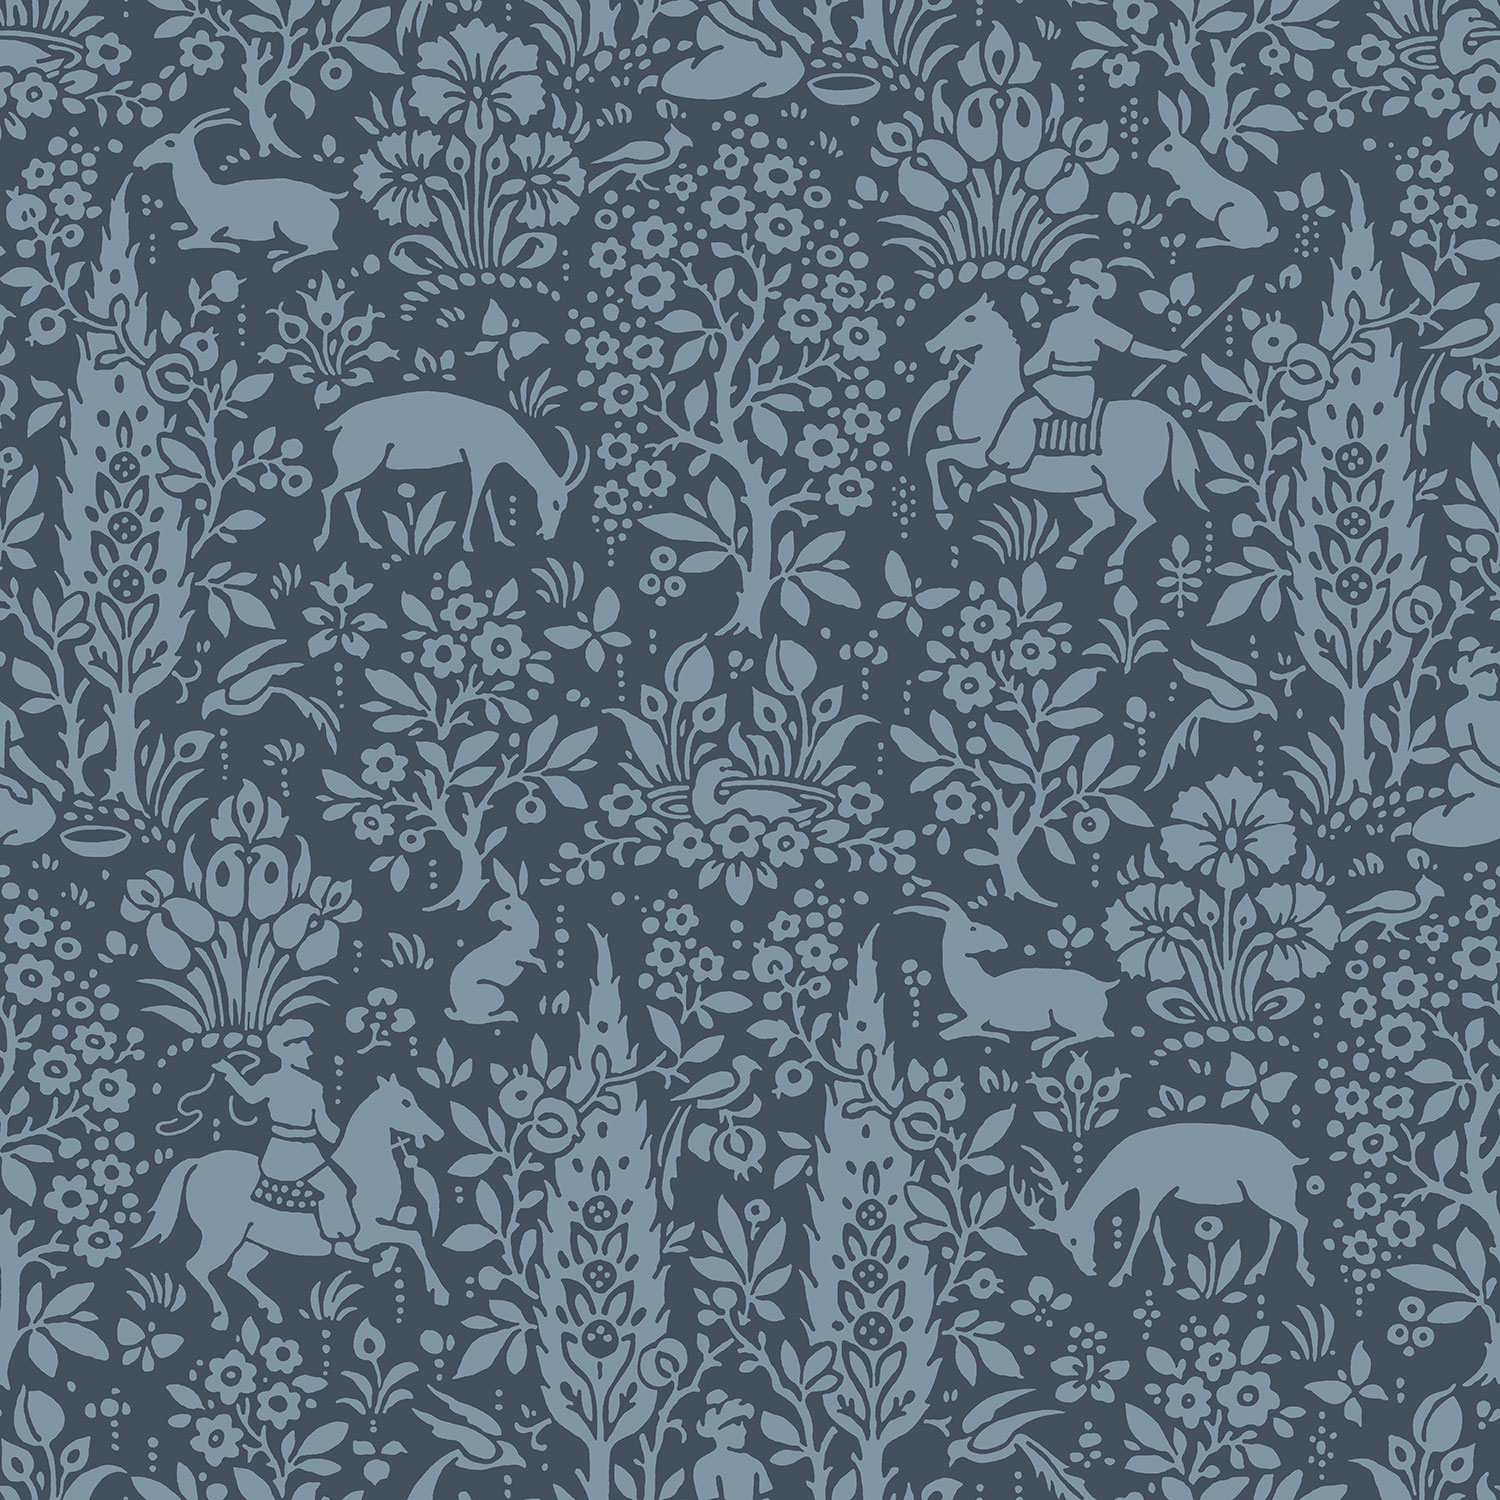 Dark Blue Navy Animal Print Wallpaper Woodland Rabbits Deer